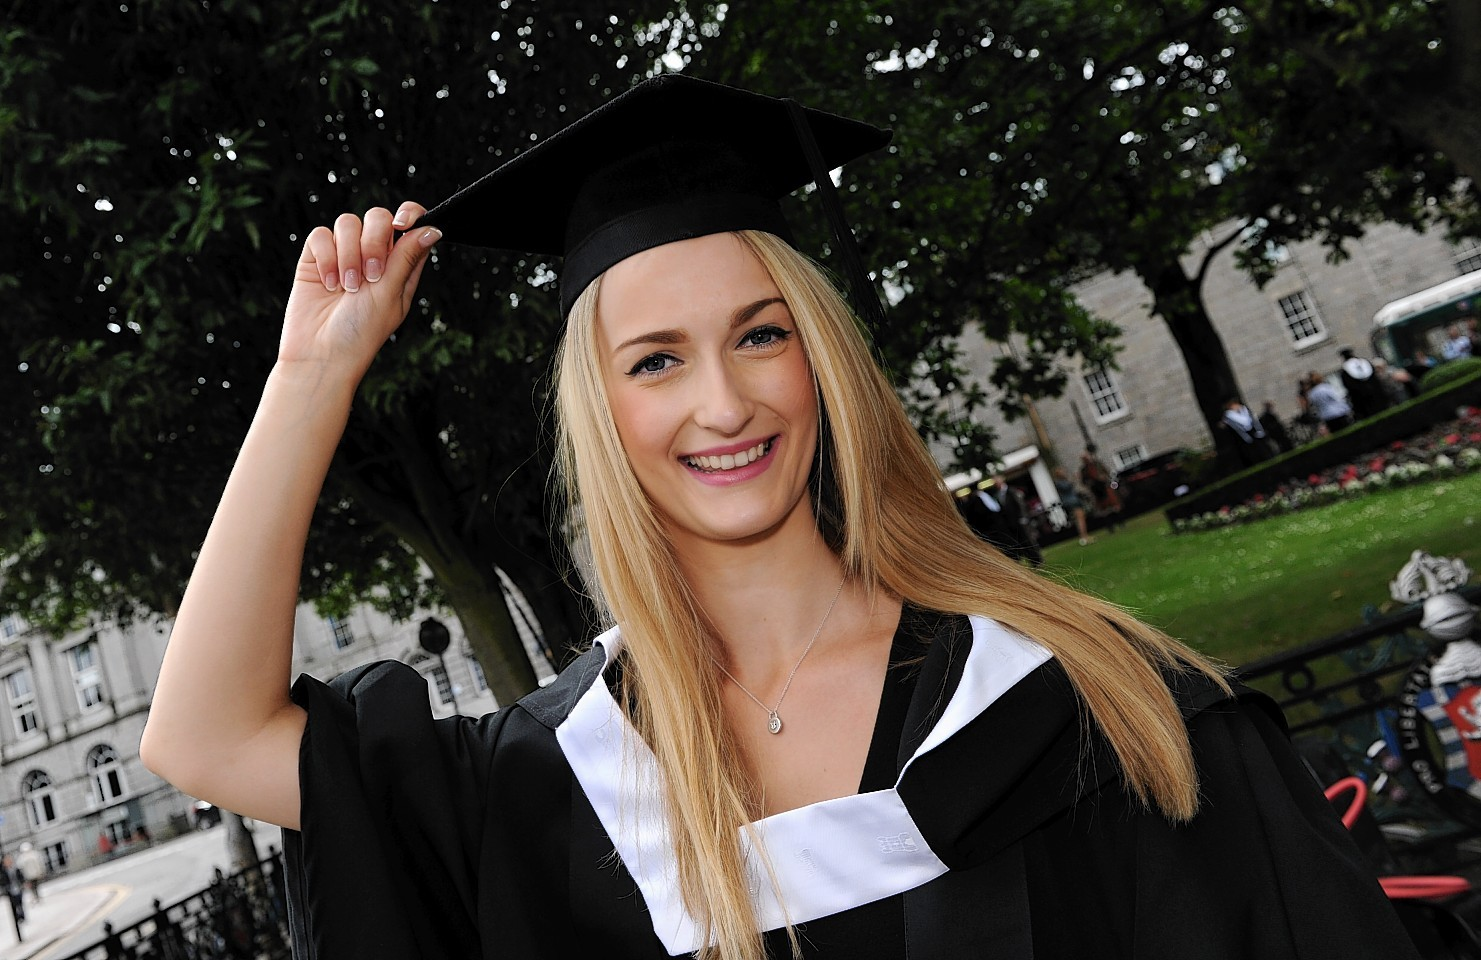 Gemma graduates with a degree in nutrition and dietetics